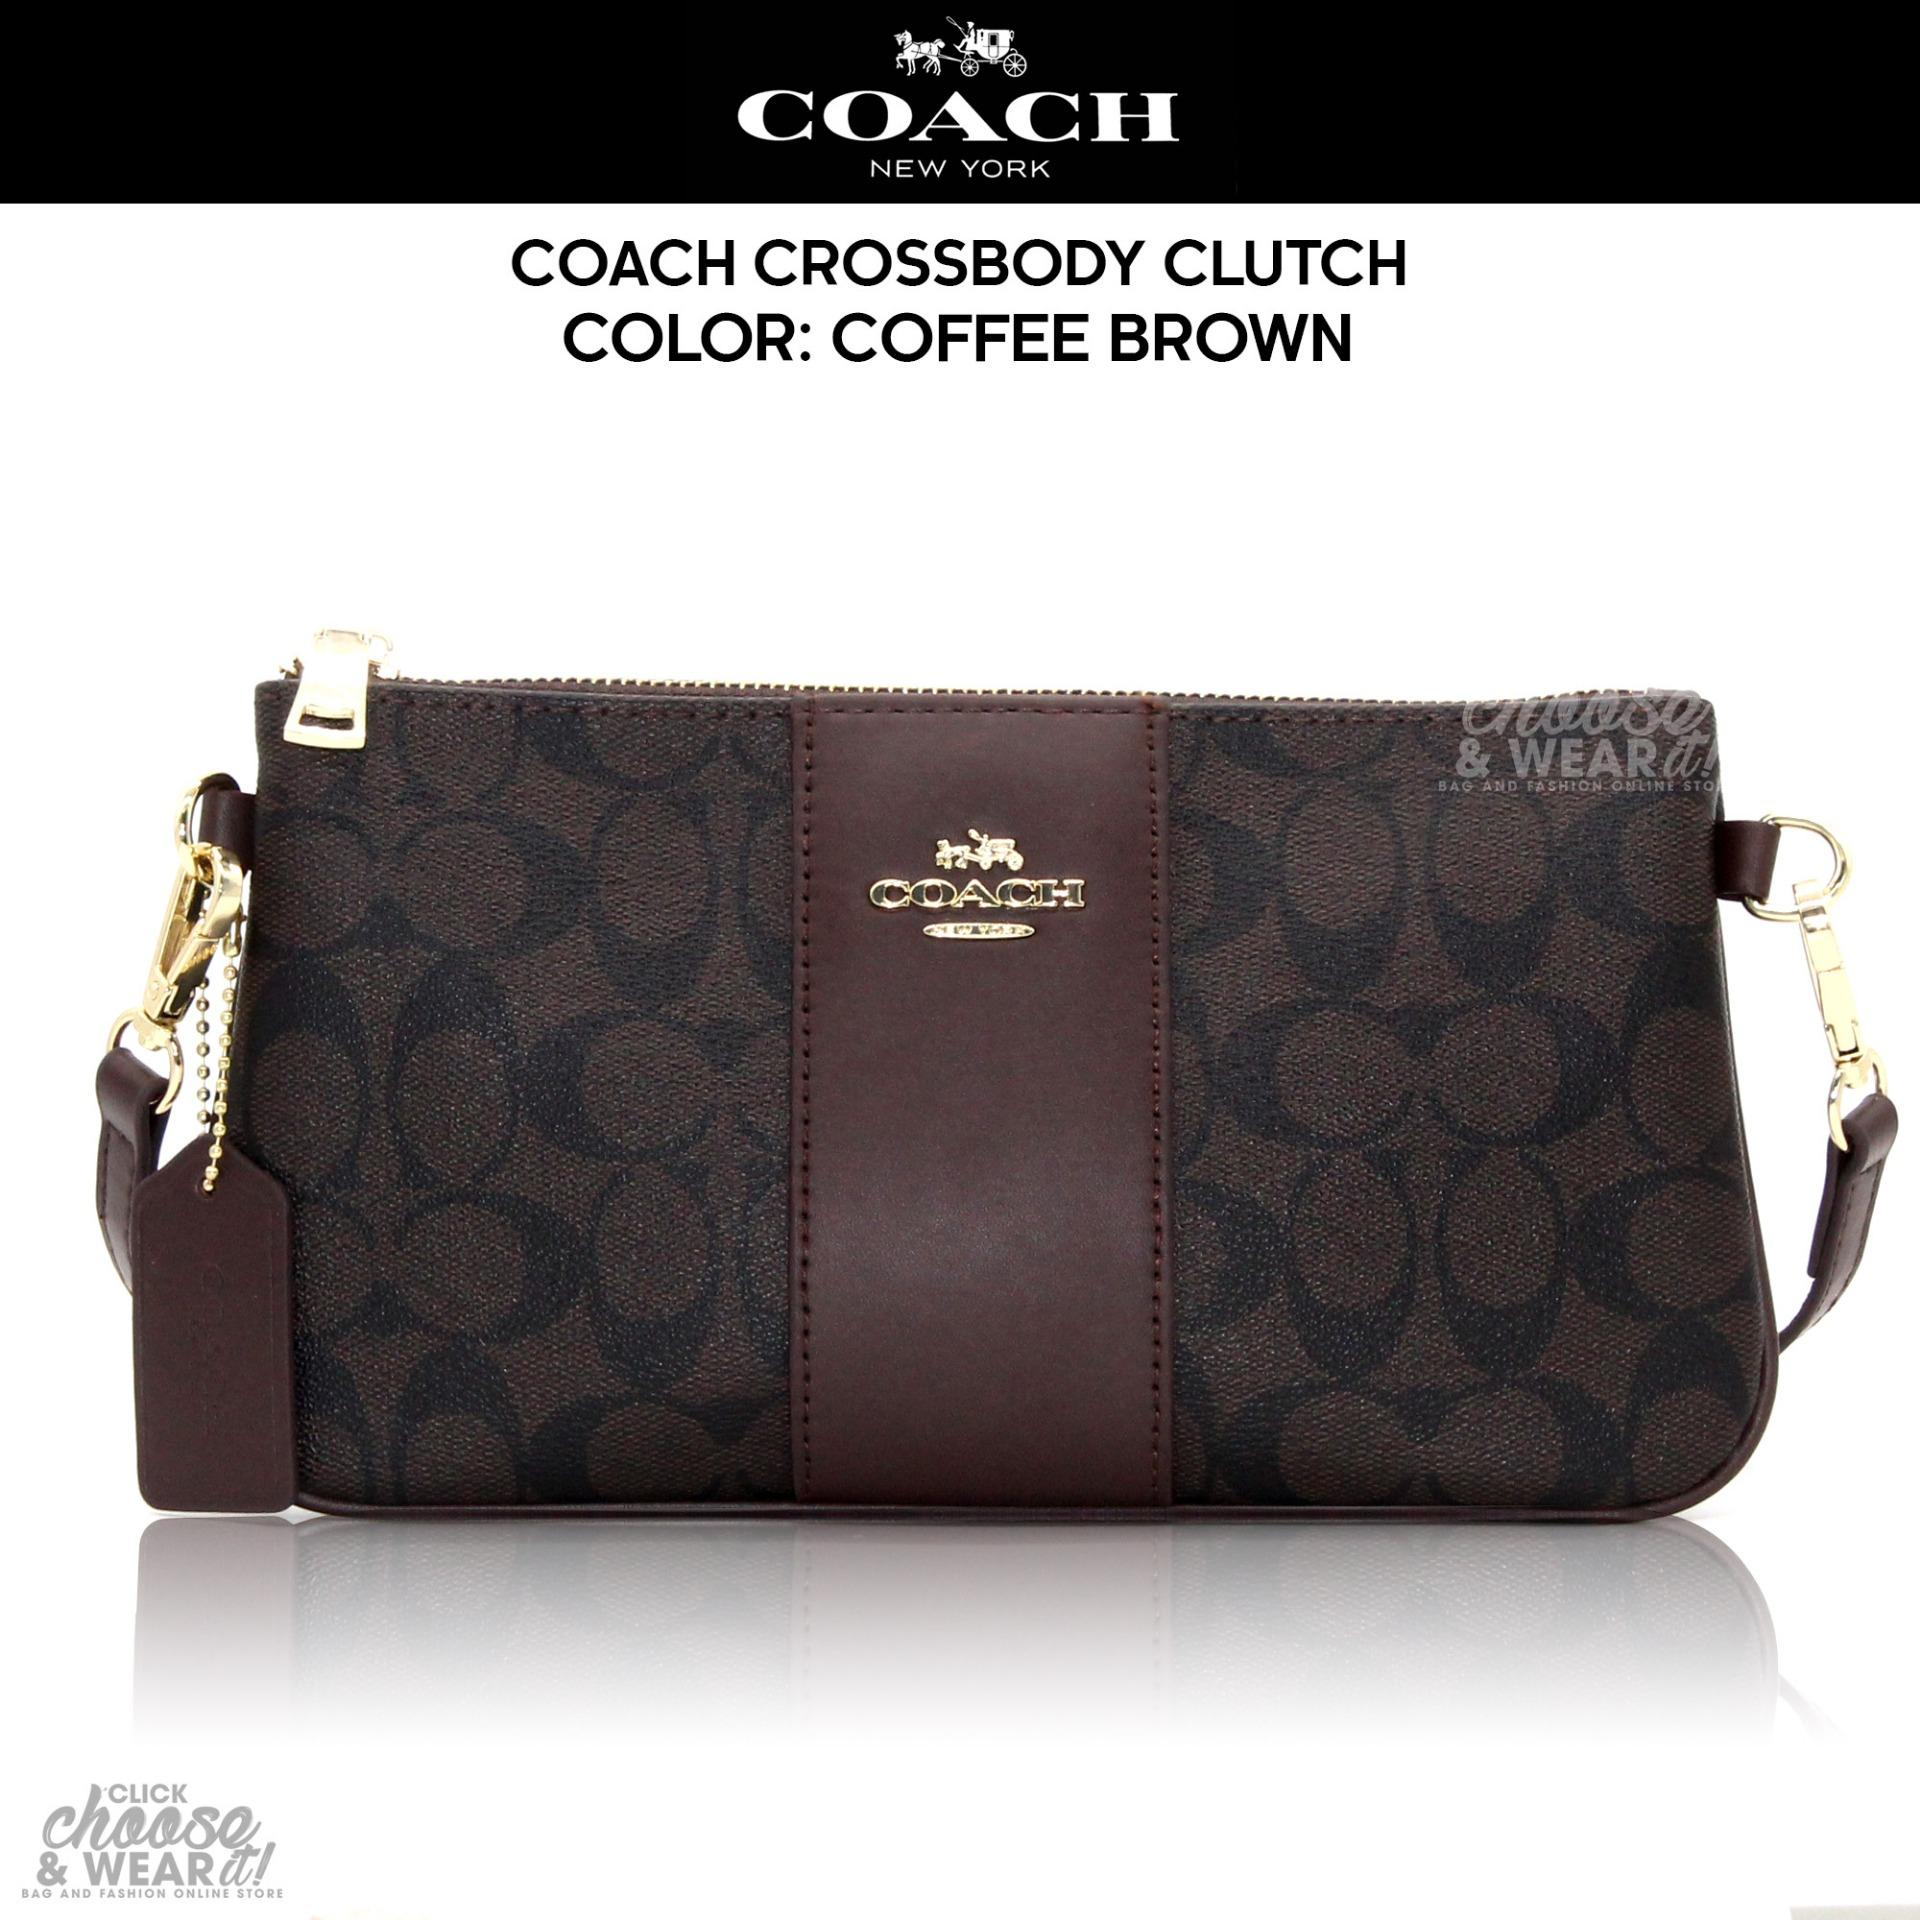 ... usa authentic coach signature coated canvas crossbody clutch sling bag  coffee brown 0a63c 39ba2 fd1a3c3188ba5